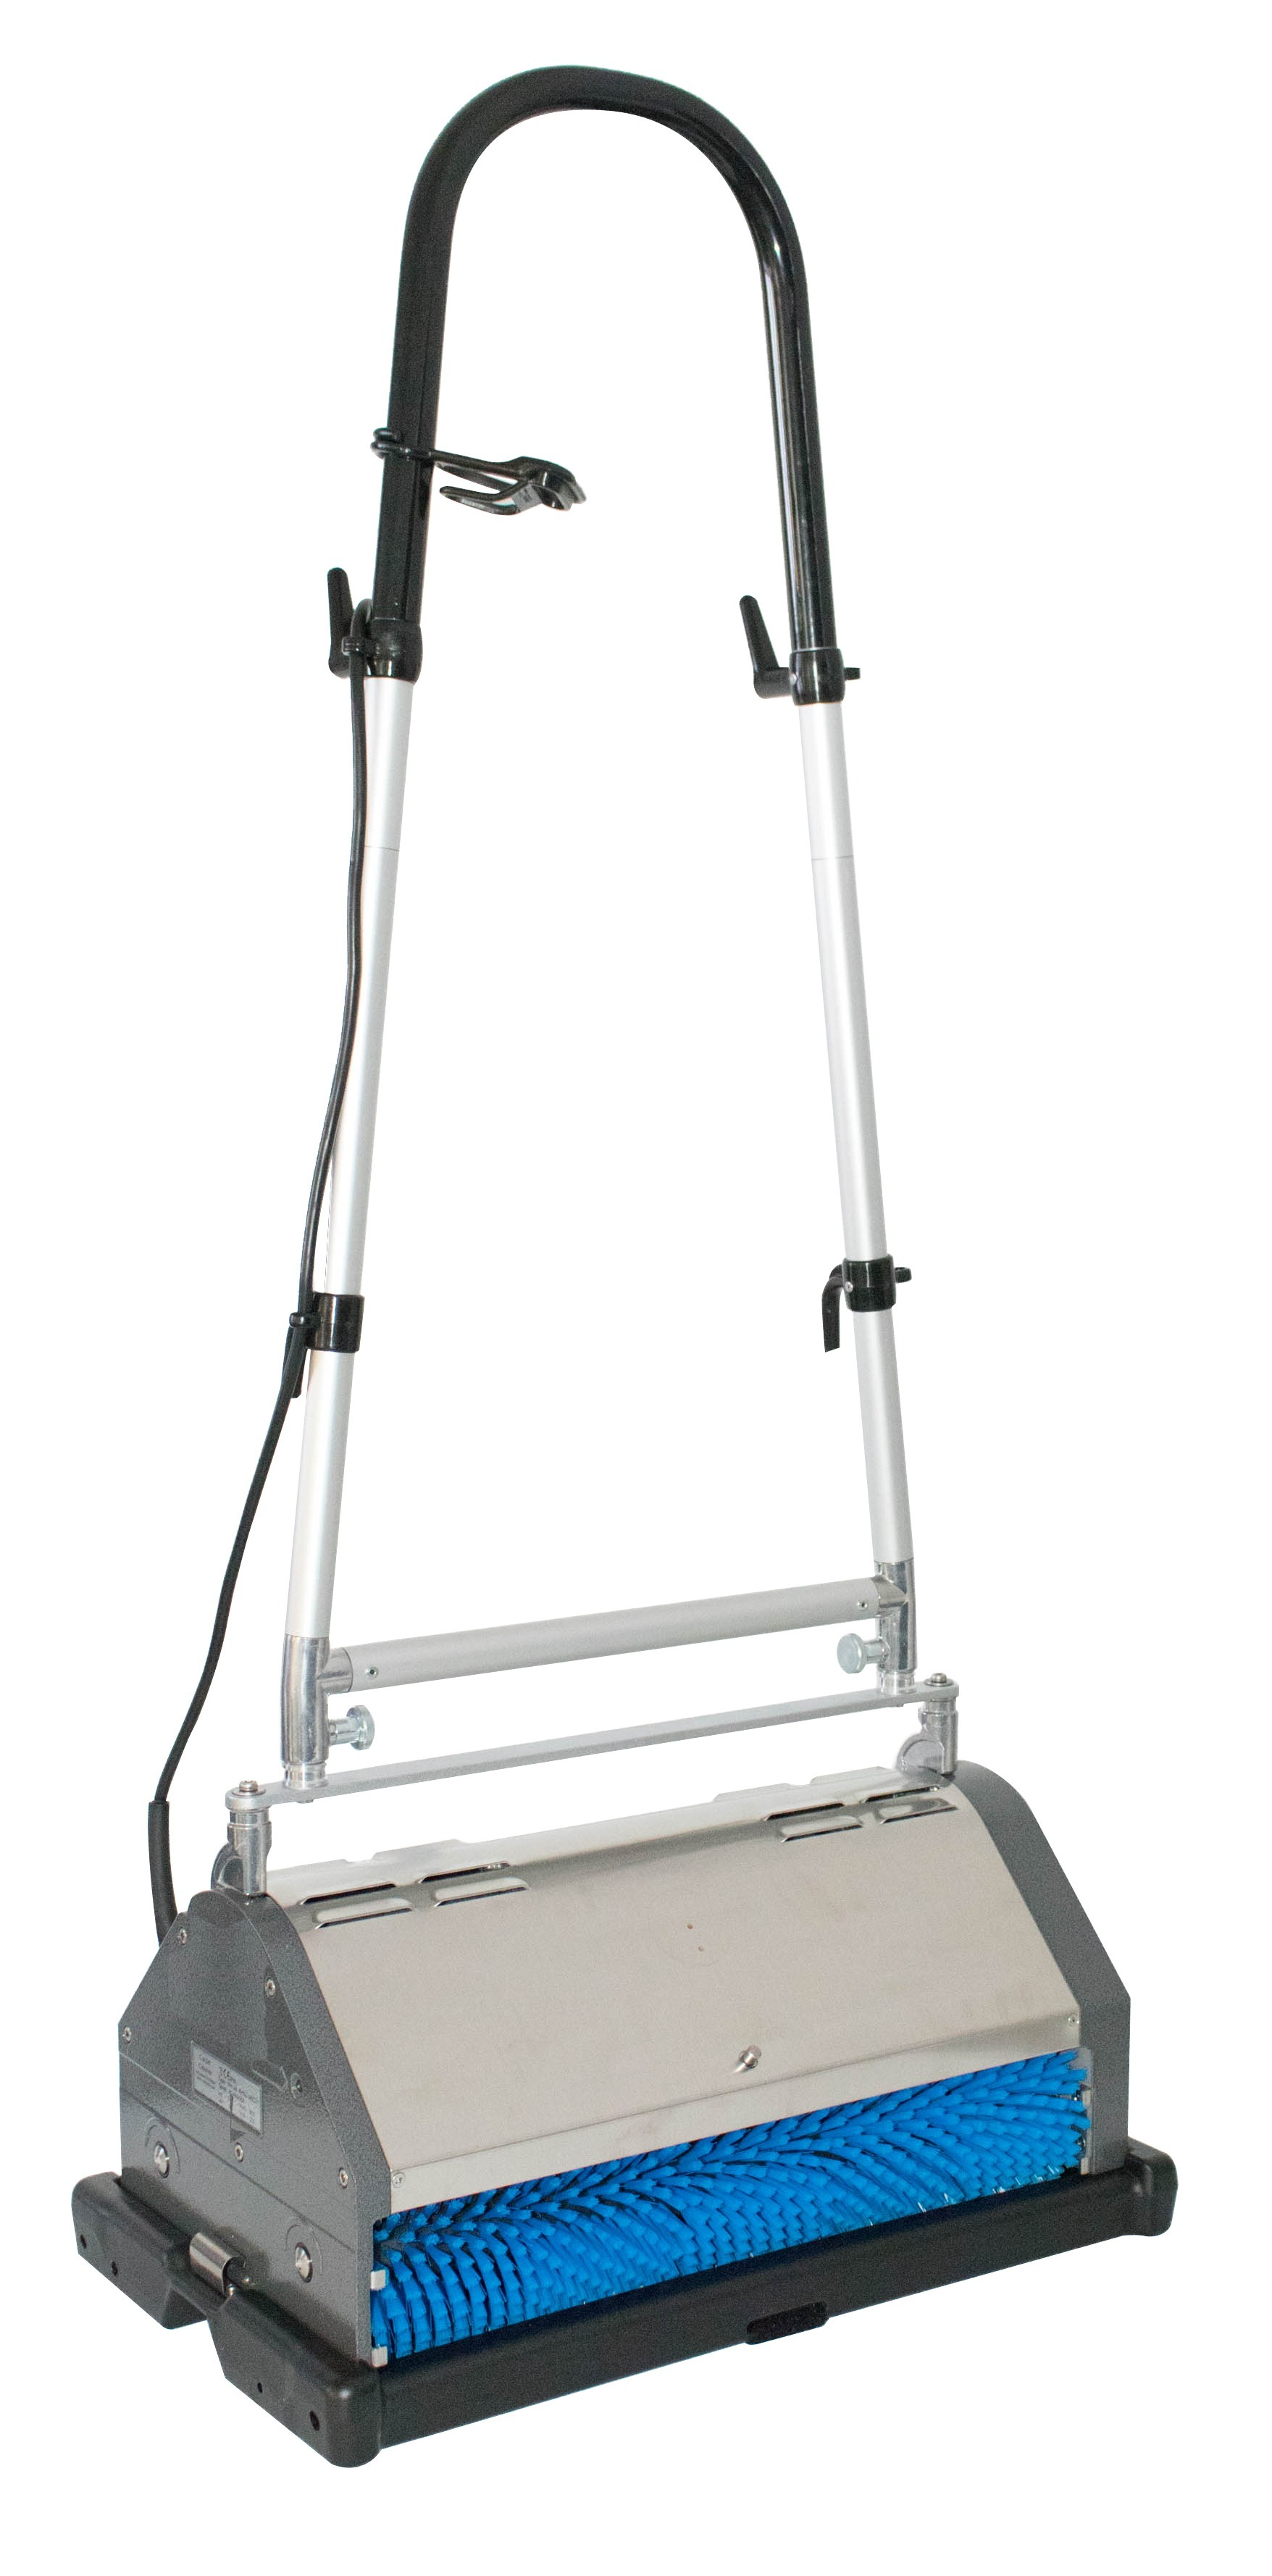 Dry Carpet Cleaning equipment